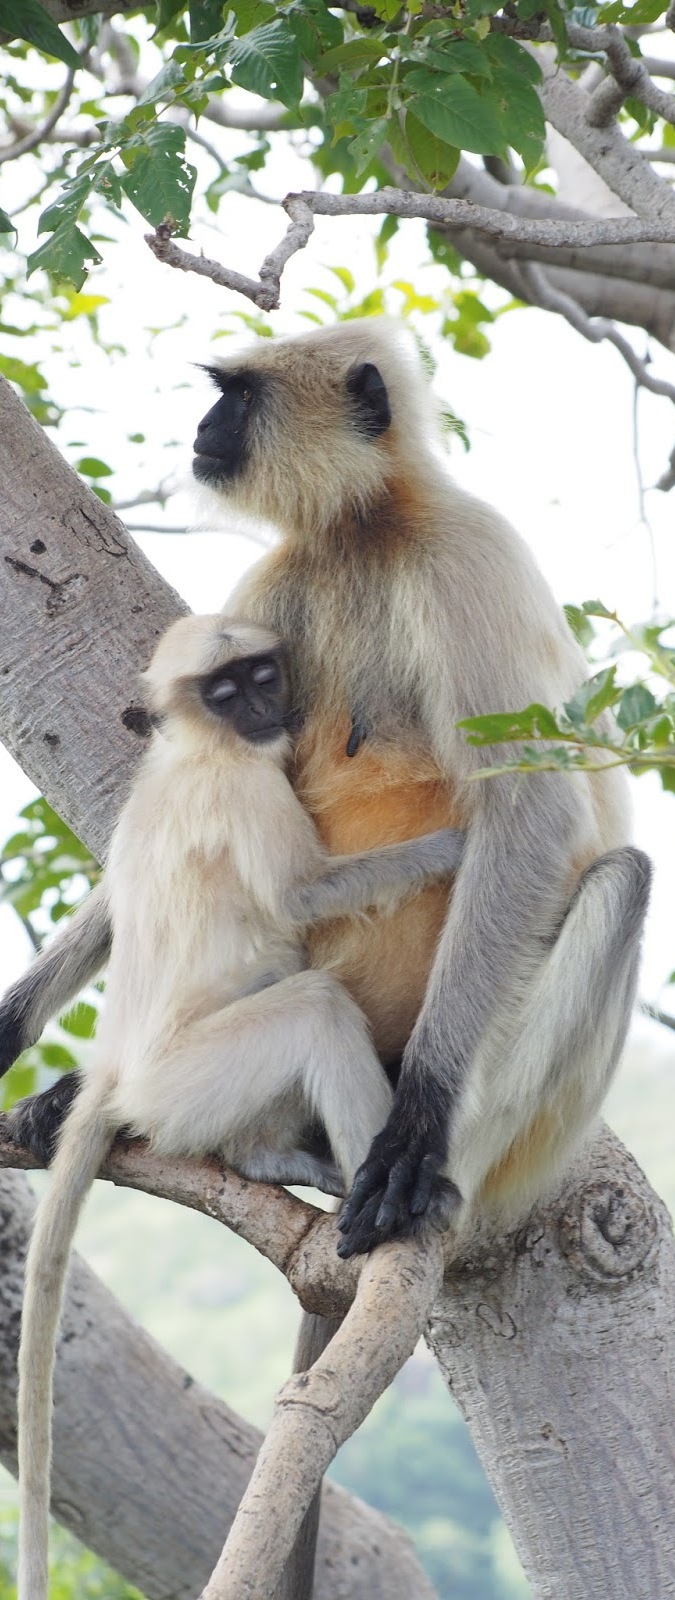 Monkey baby with mother.